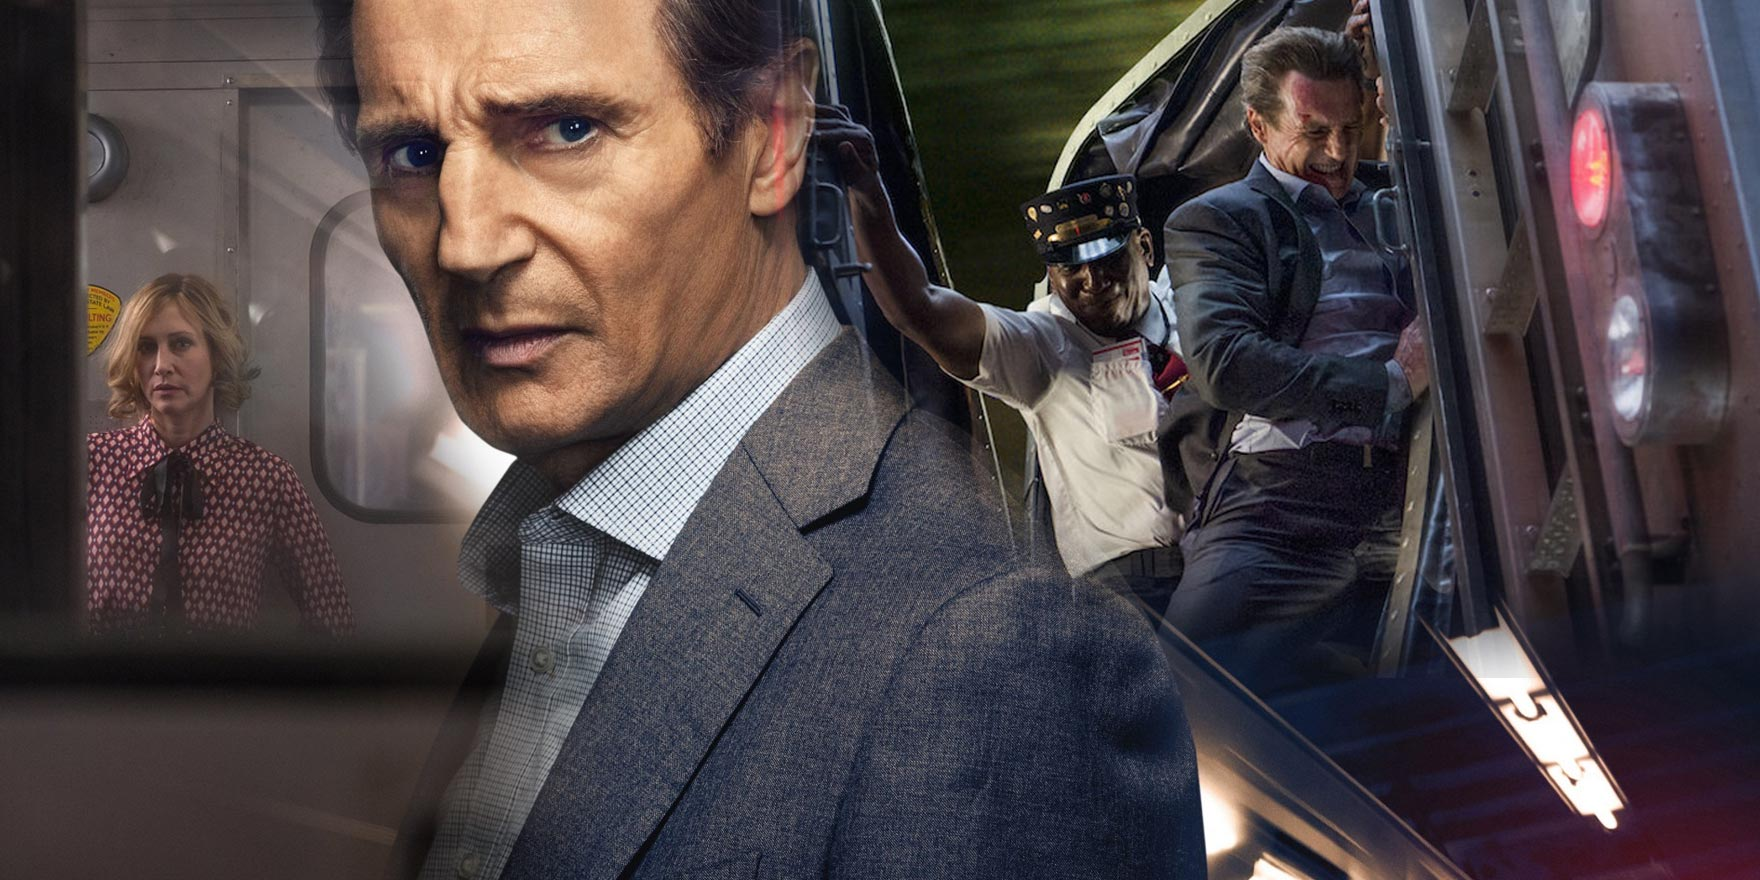 The Commuter - Header Image